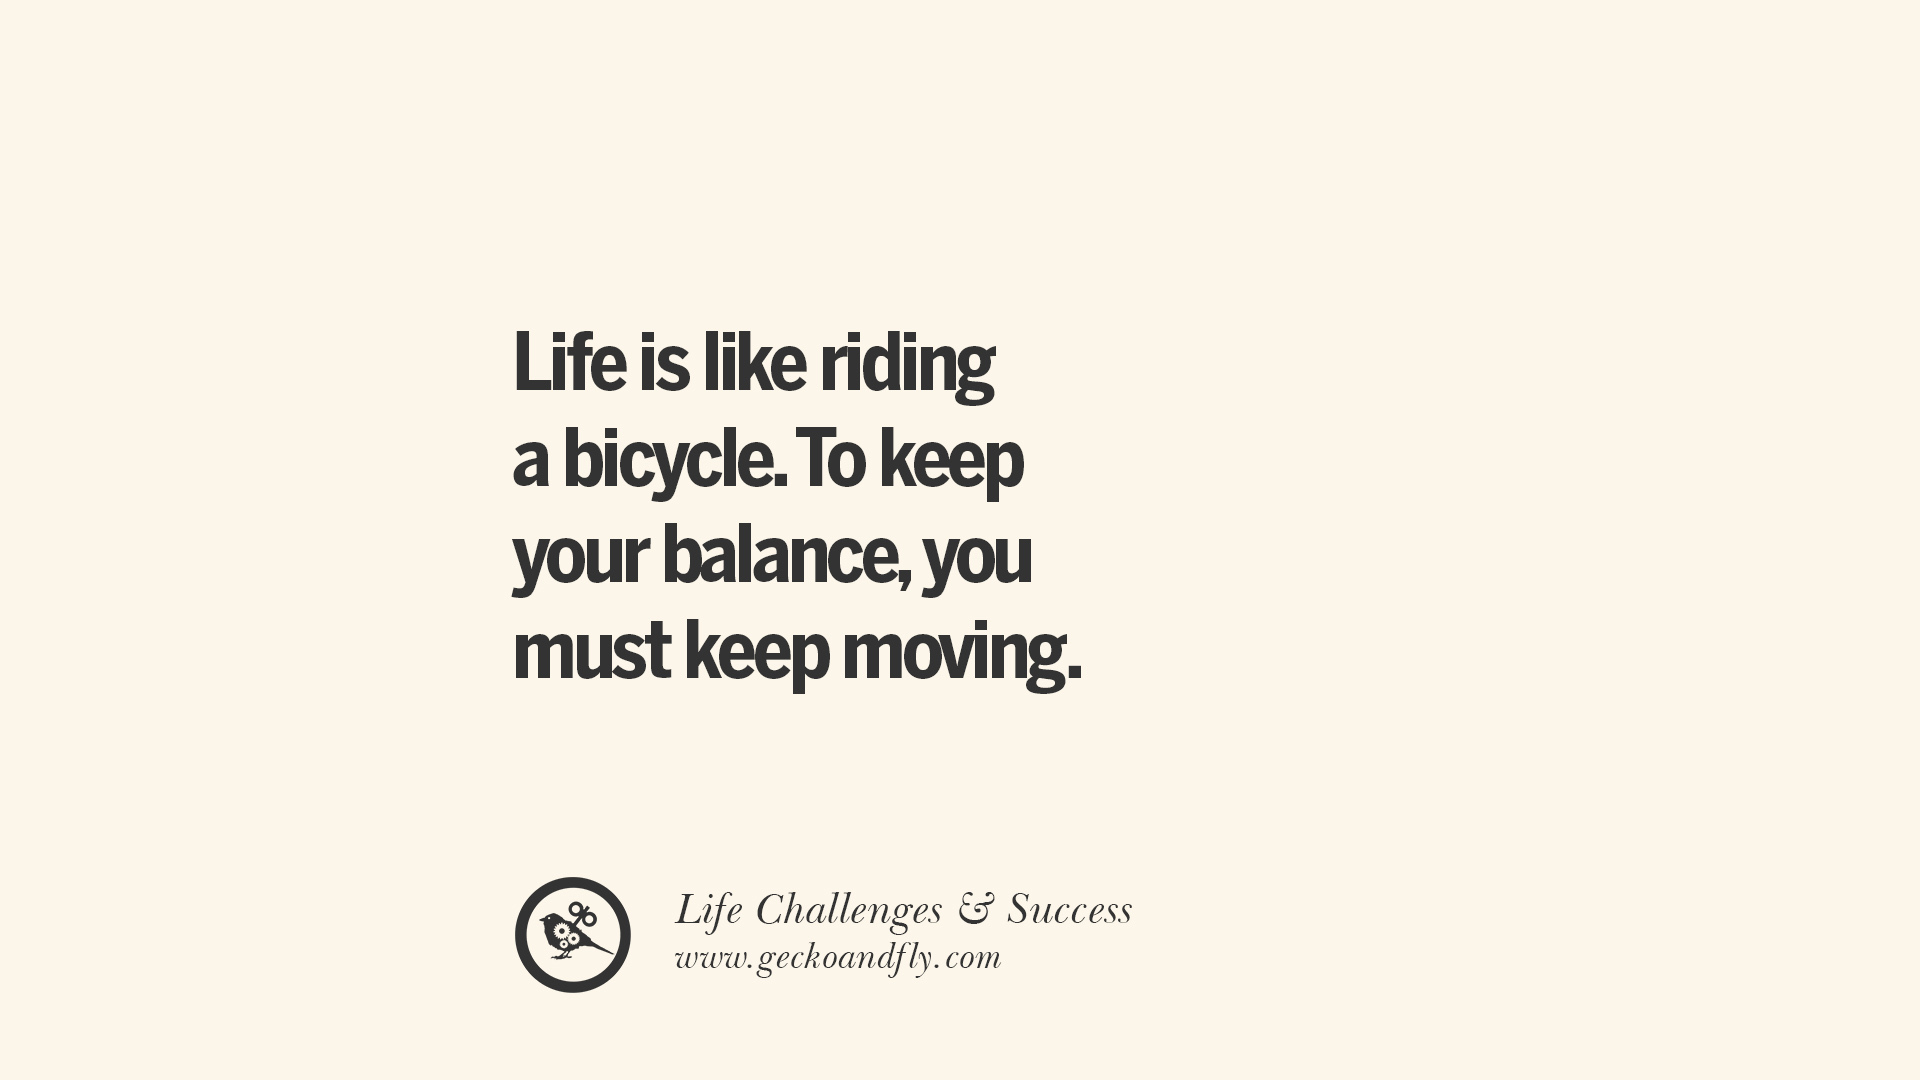 Positive Quotes Of Life 36 Inspirational Quotes About Life Challenges And The Pursuit Of